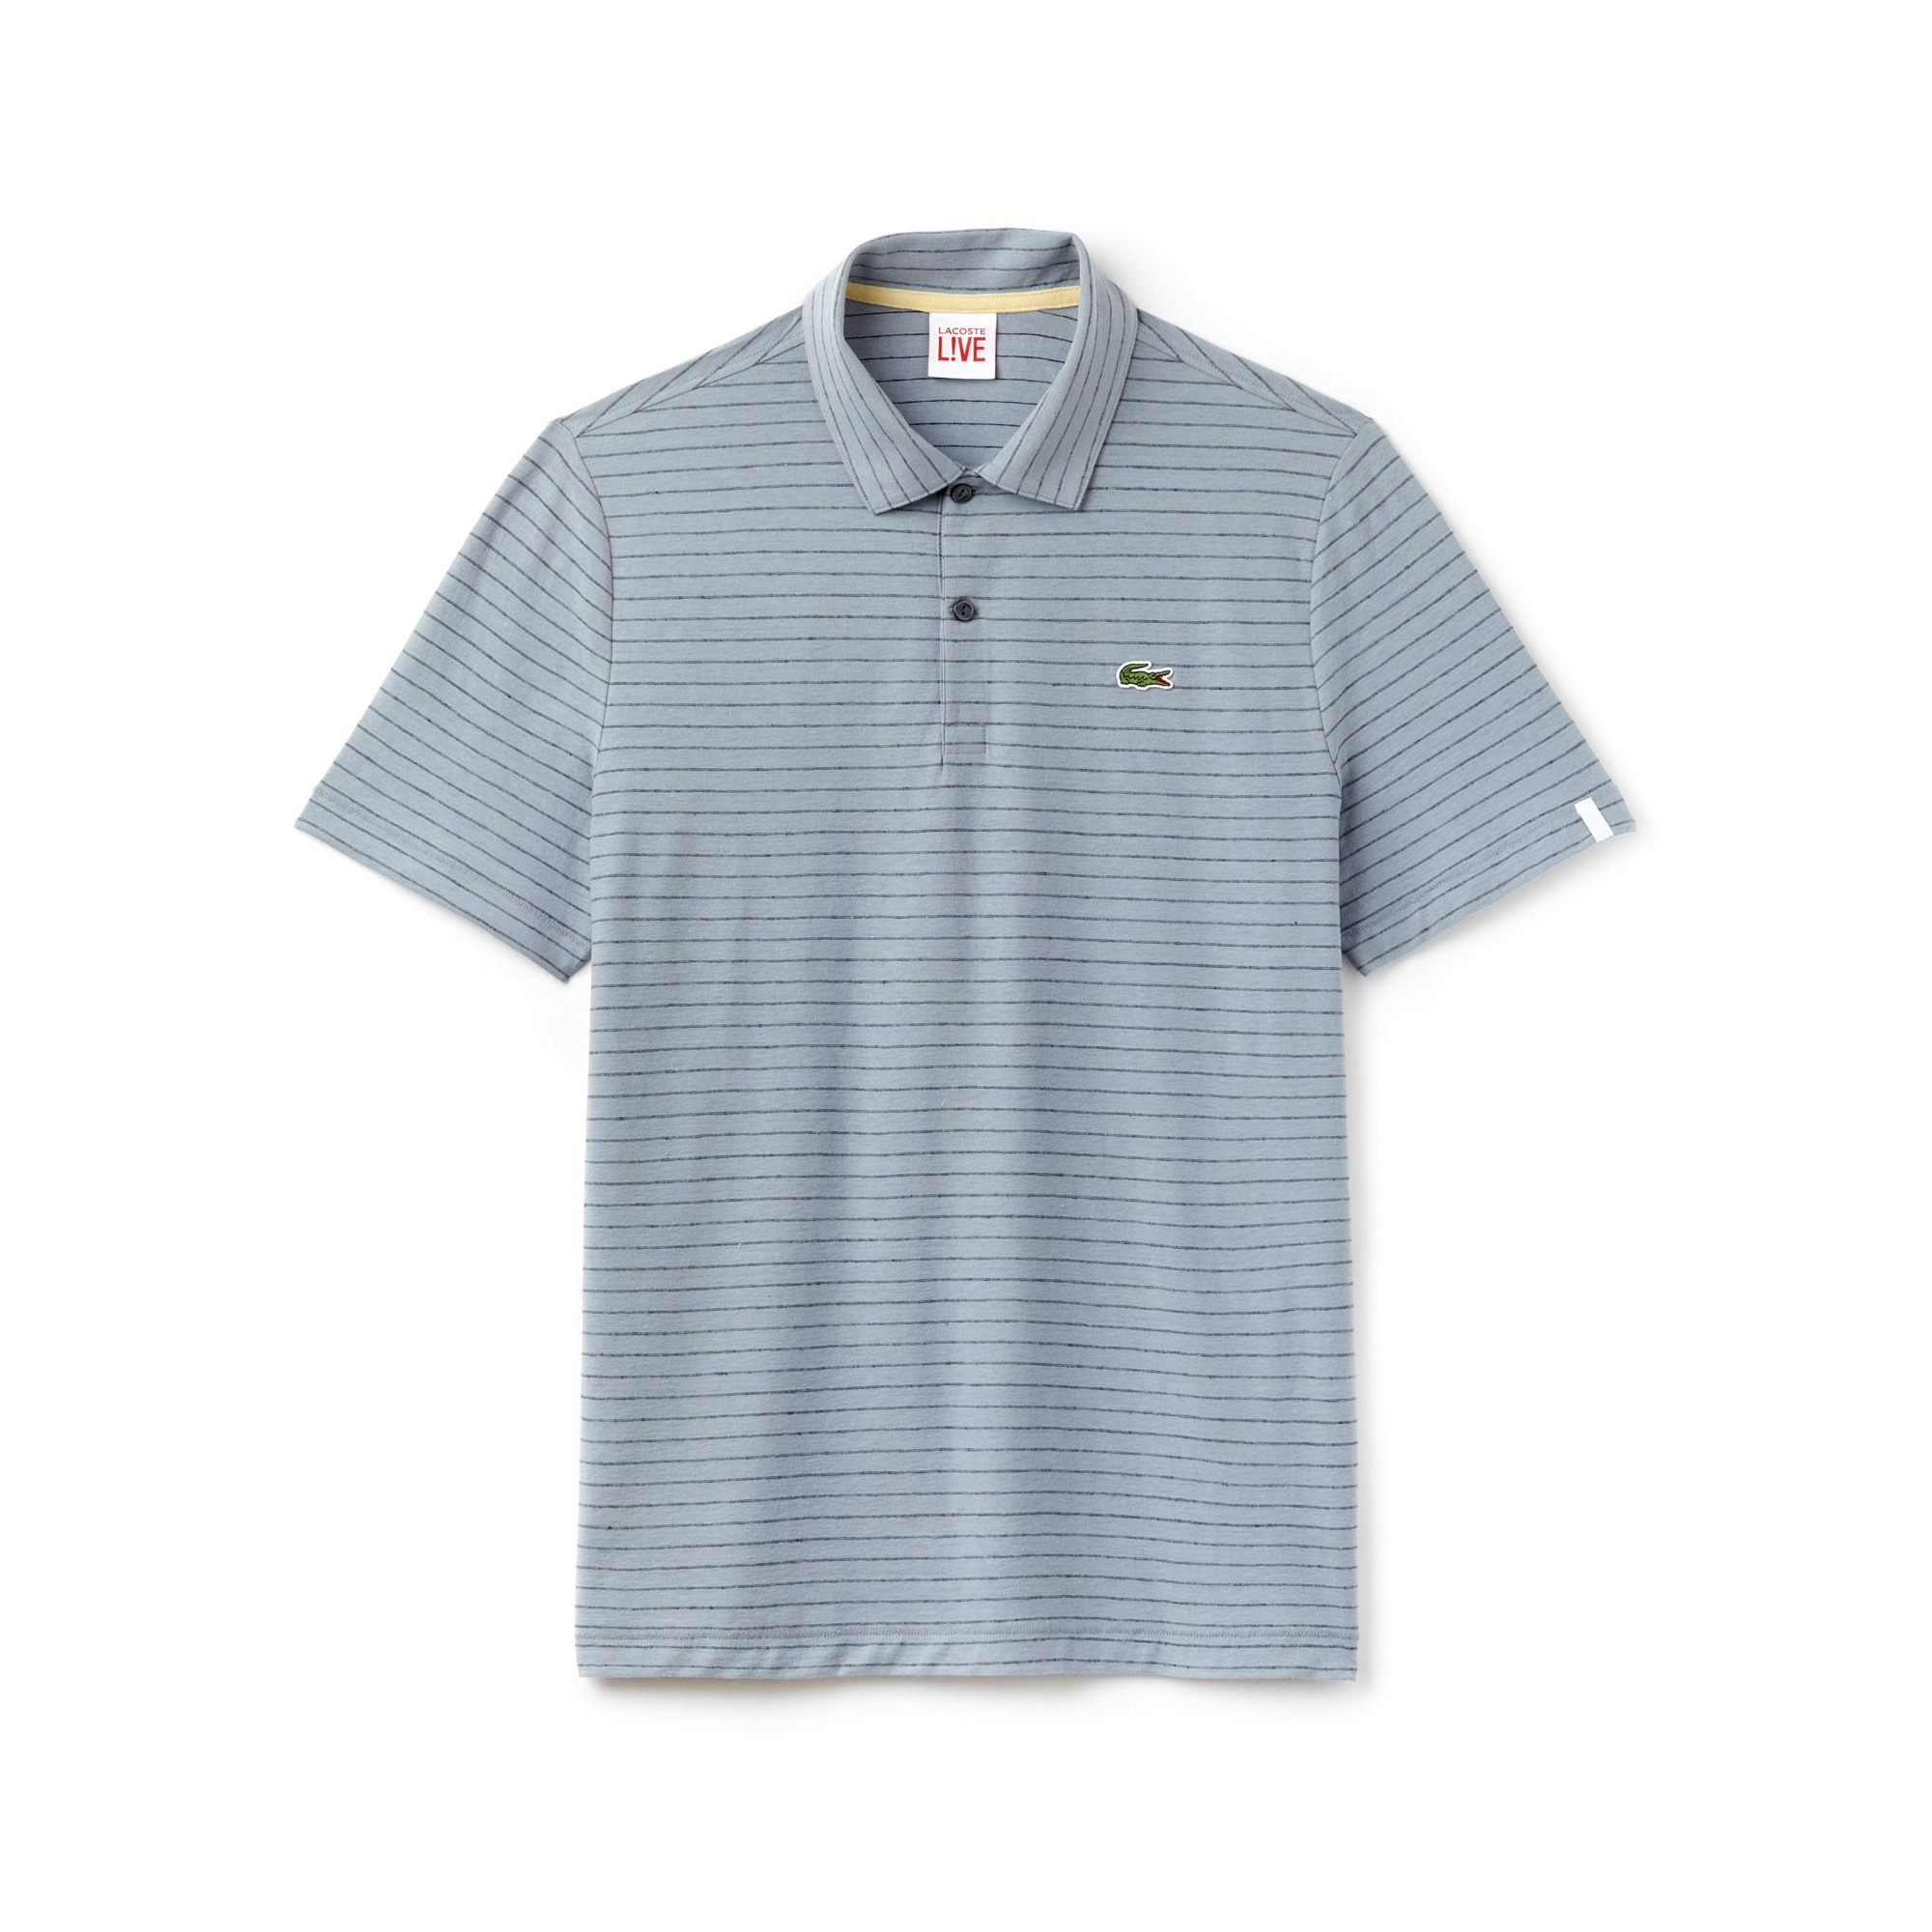 Men's Lacoste LIVE Slim Fit Striped Linen and Cotton Jersey Polo Shirt